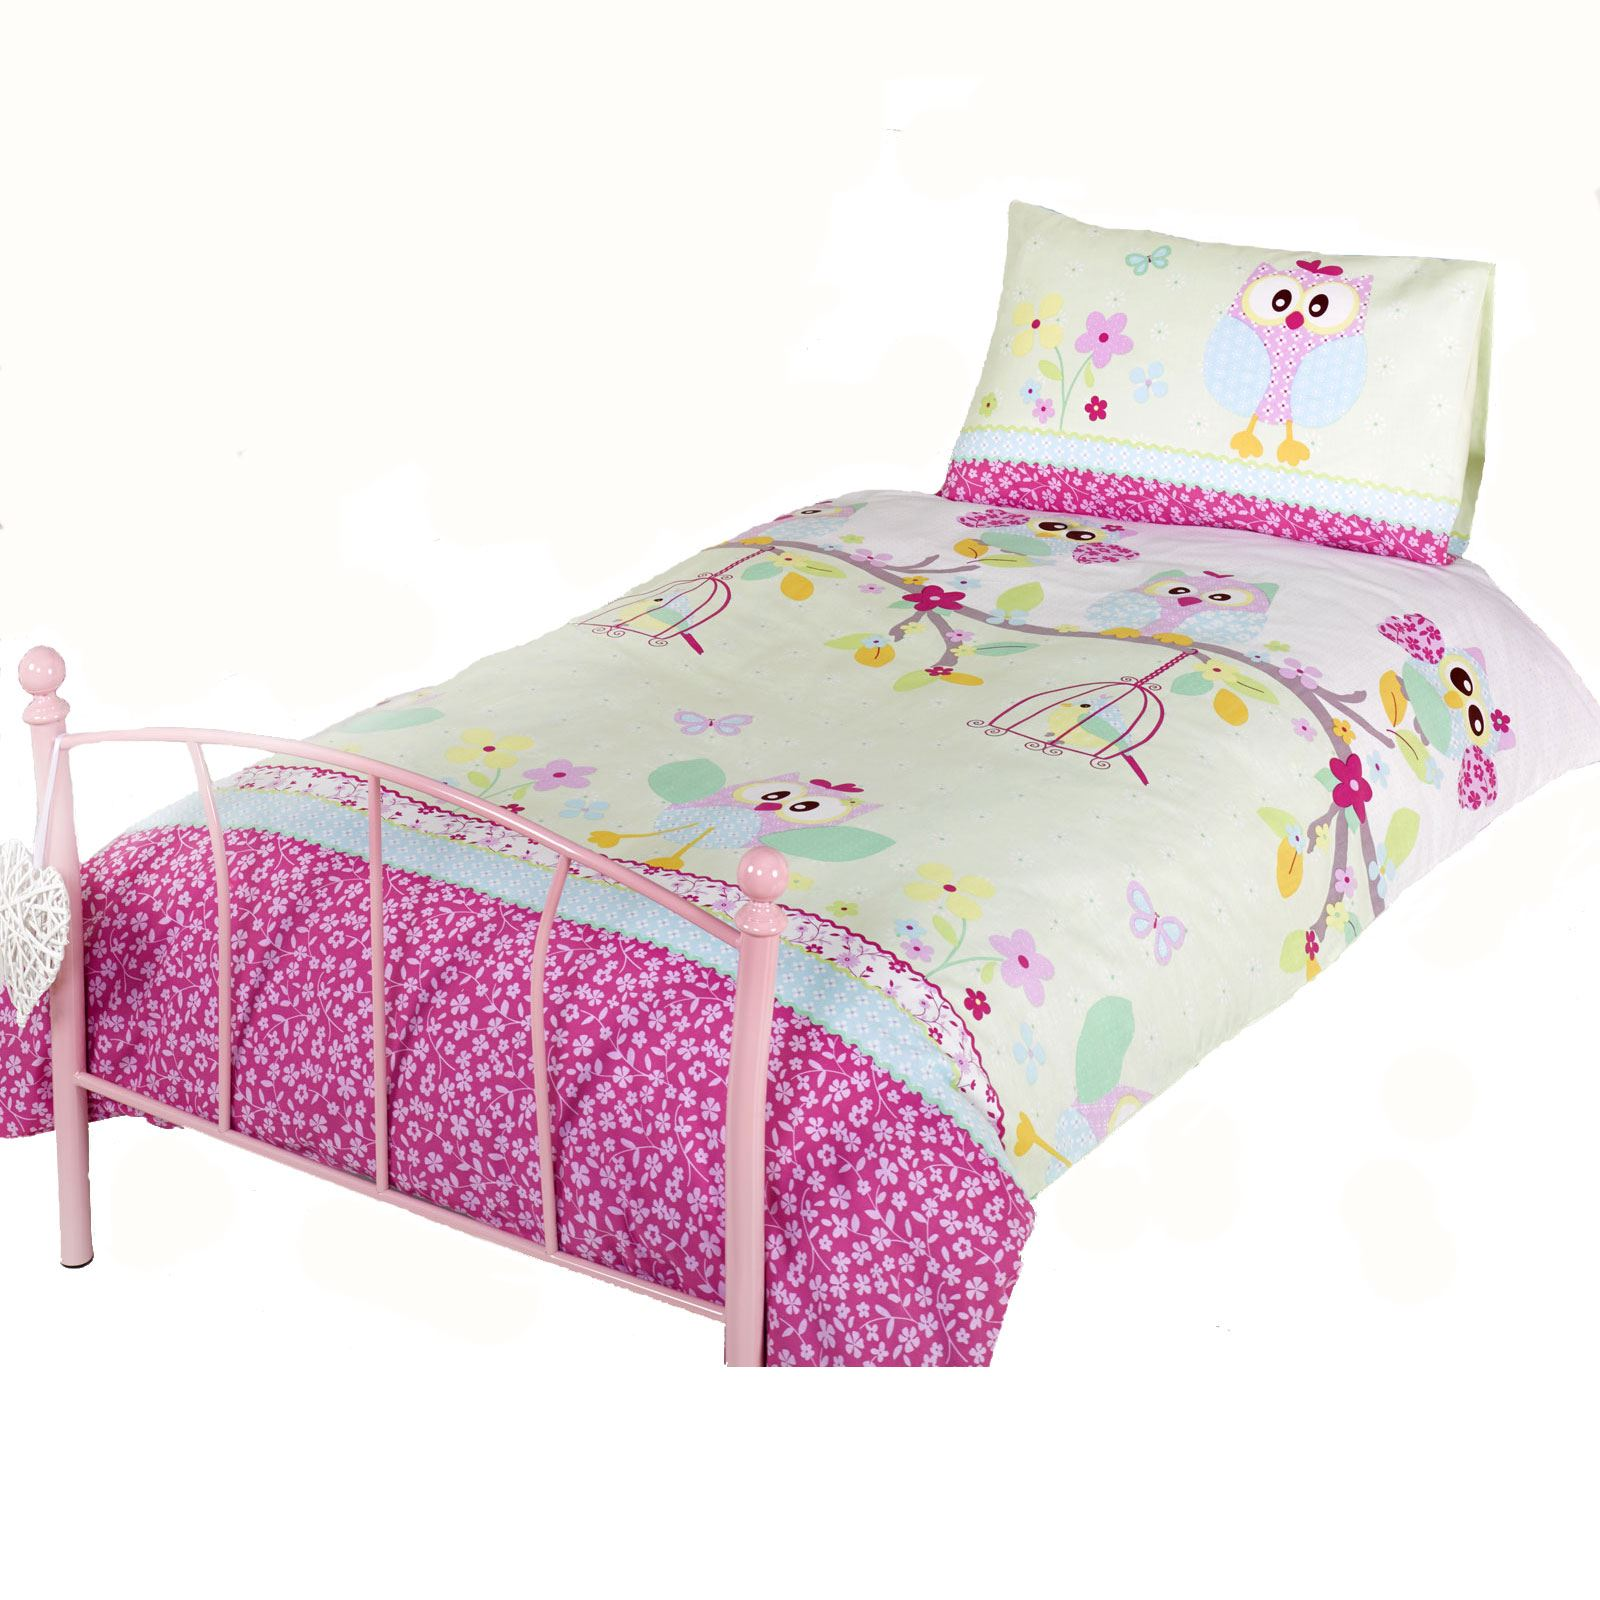 hiboux 39 twit twoo 39 housse couette simple new parure filles. Black Bedroom Furniture Sets. Home Design Ideas